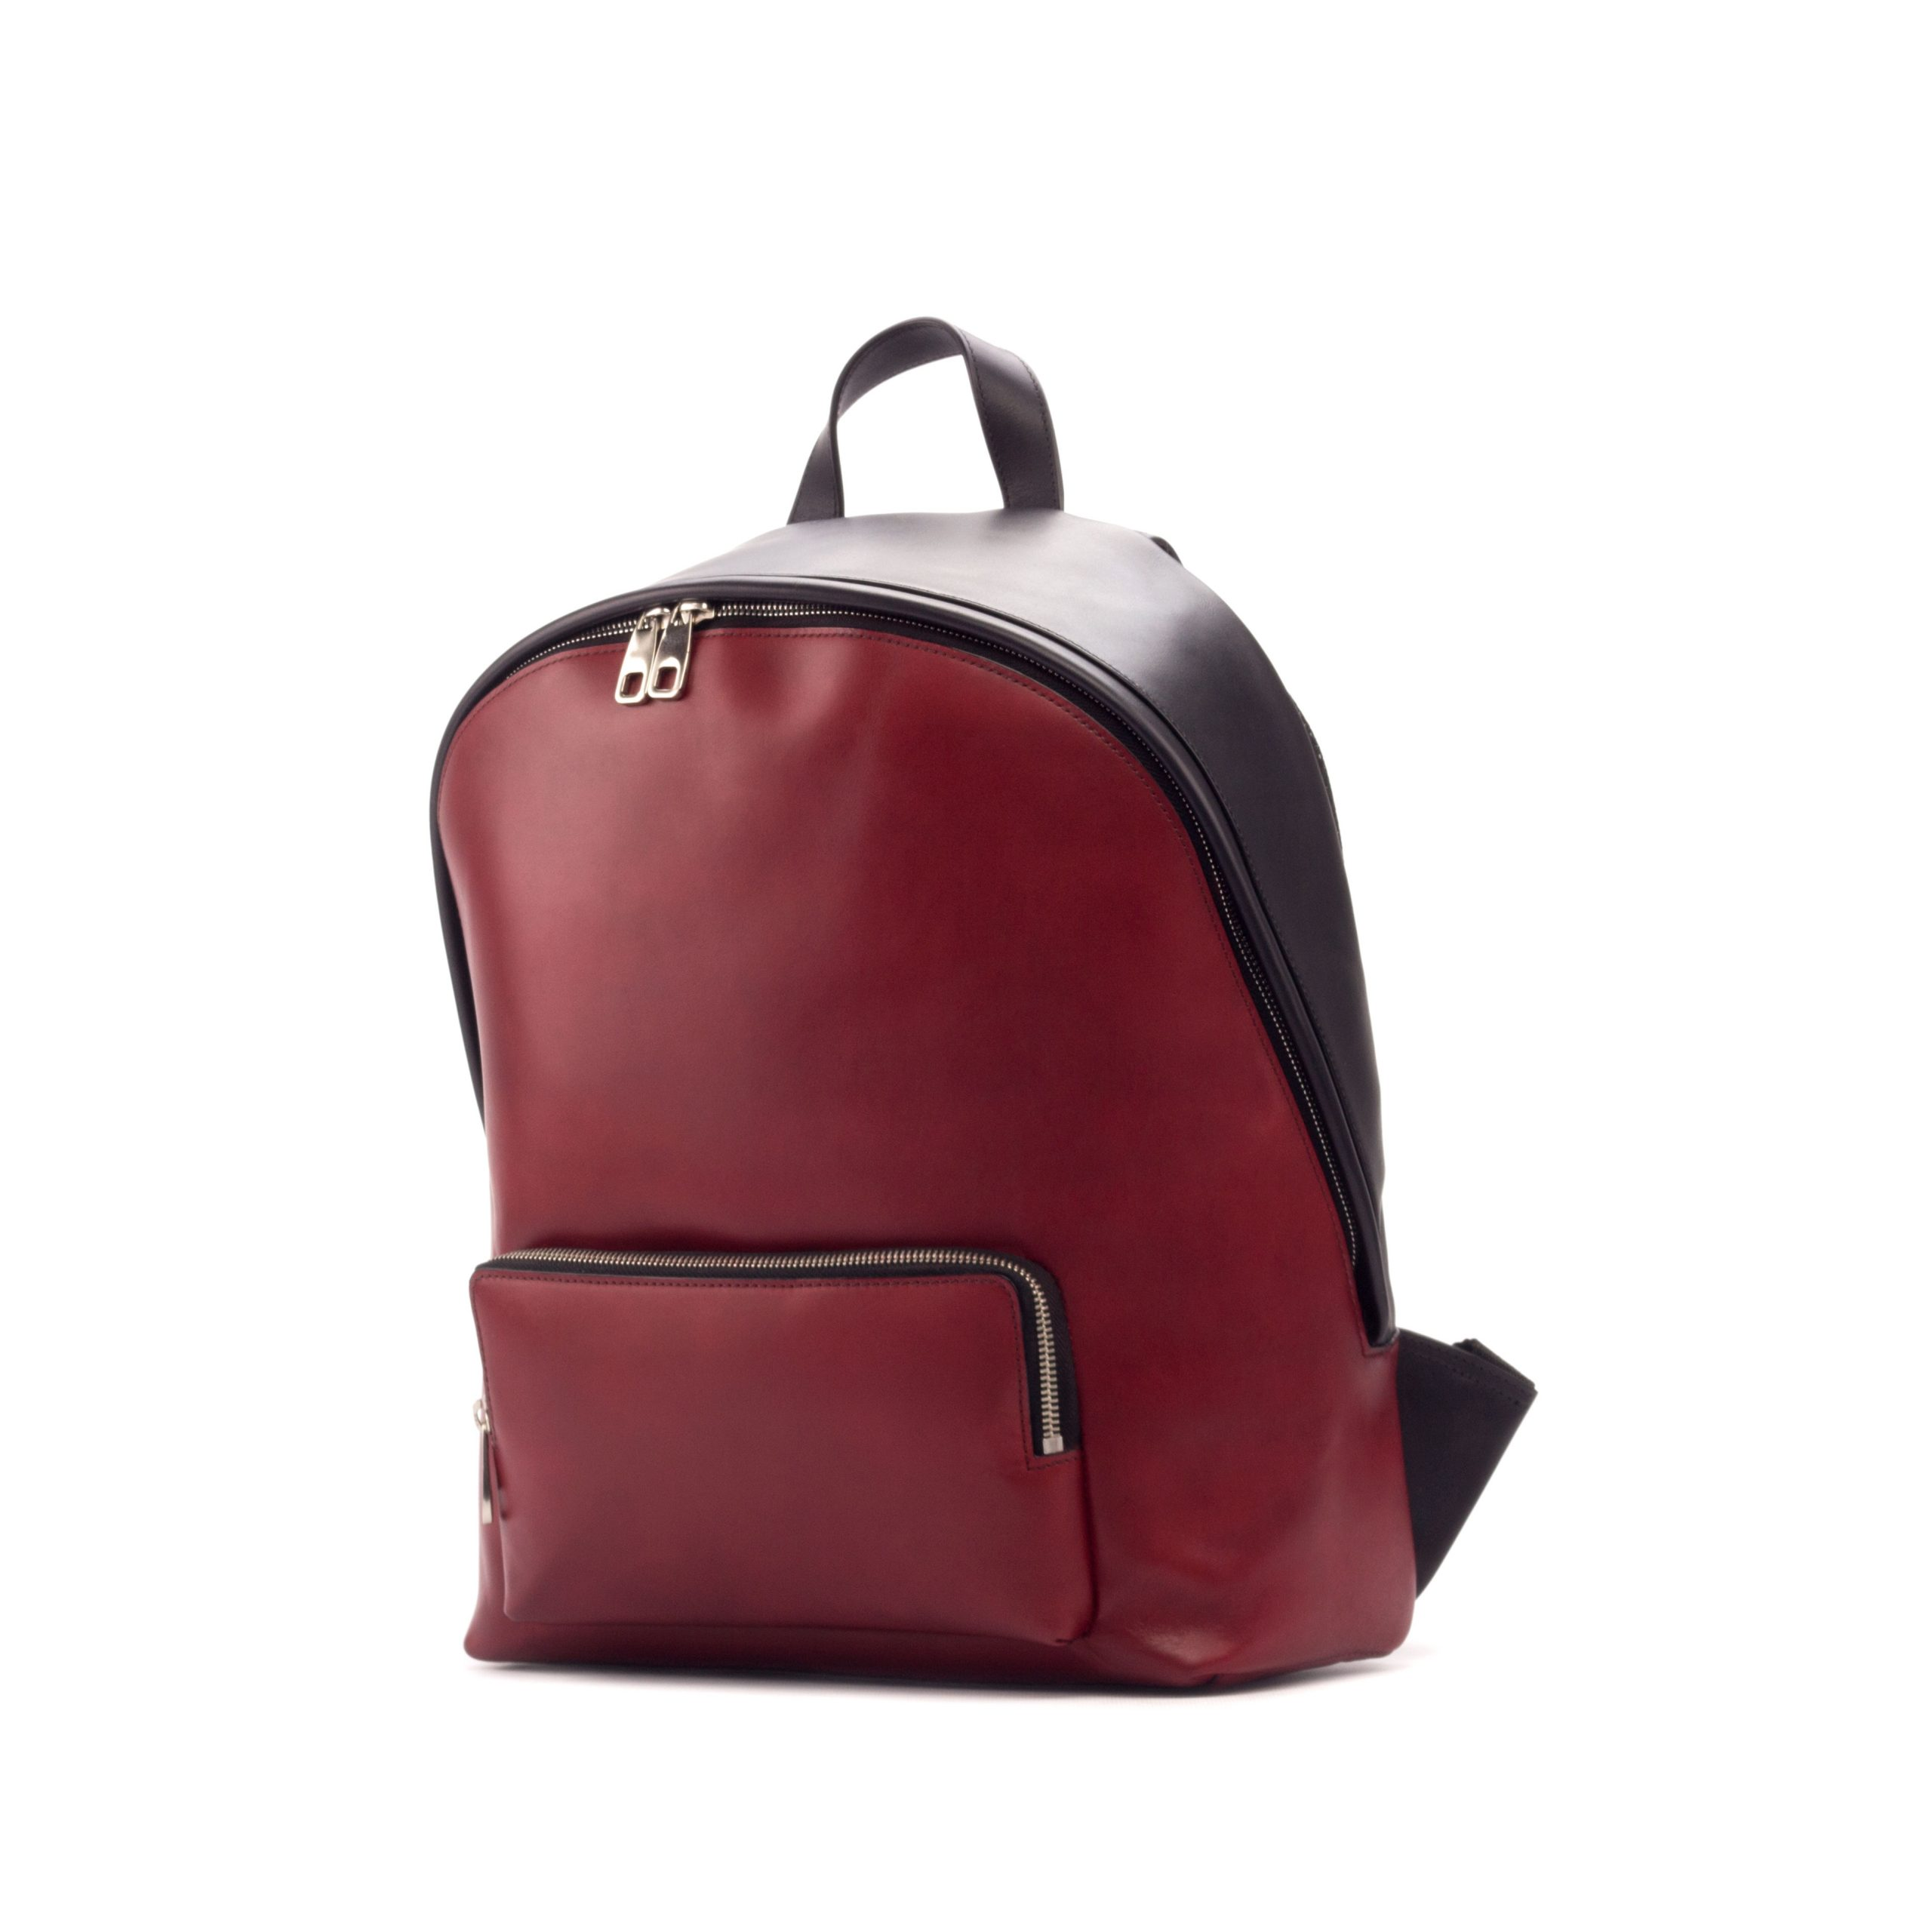 Back Pack - Painted Calf Red And Black-Ang2